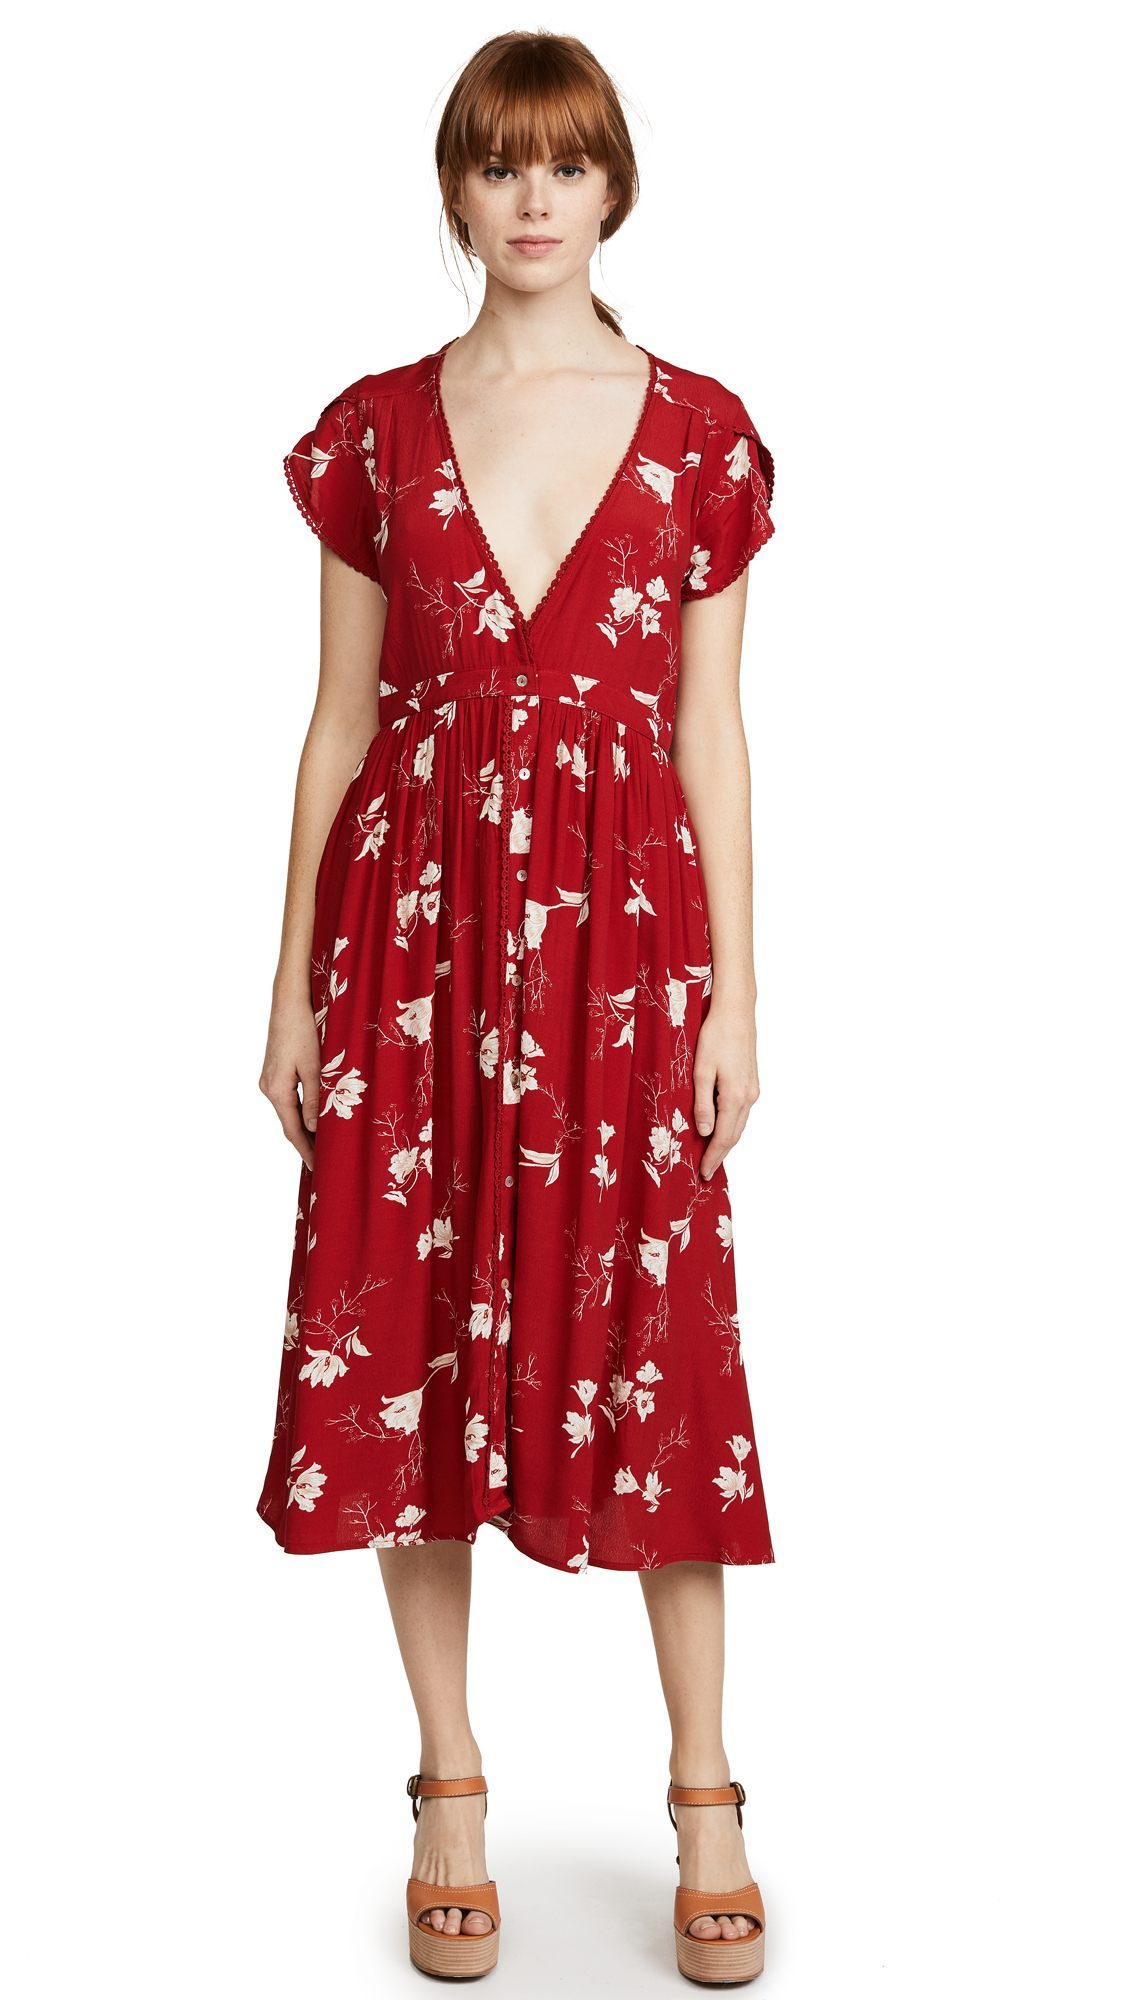 Knot Sisters Domingo Dress In Scarlet Tulips